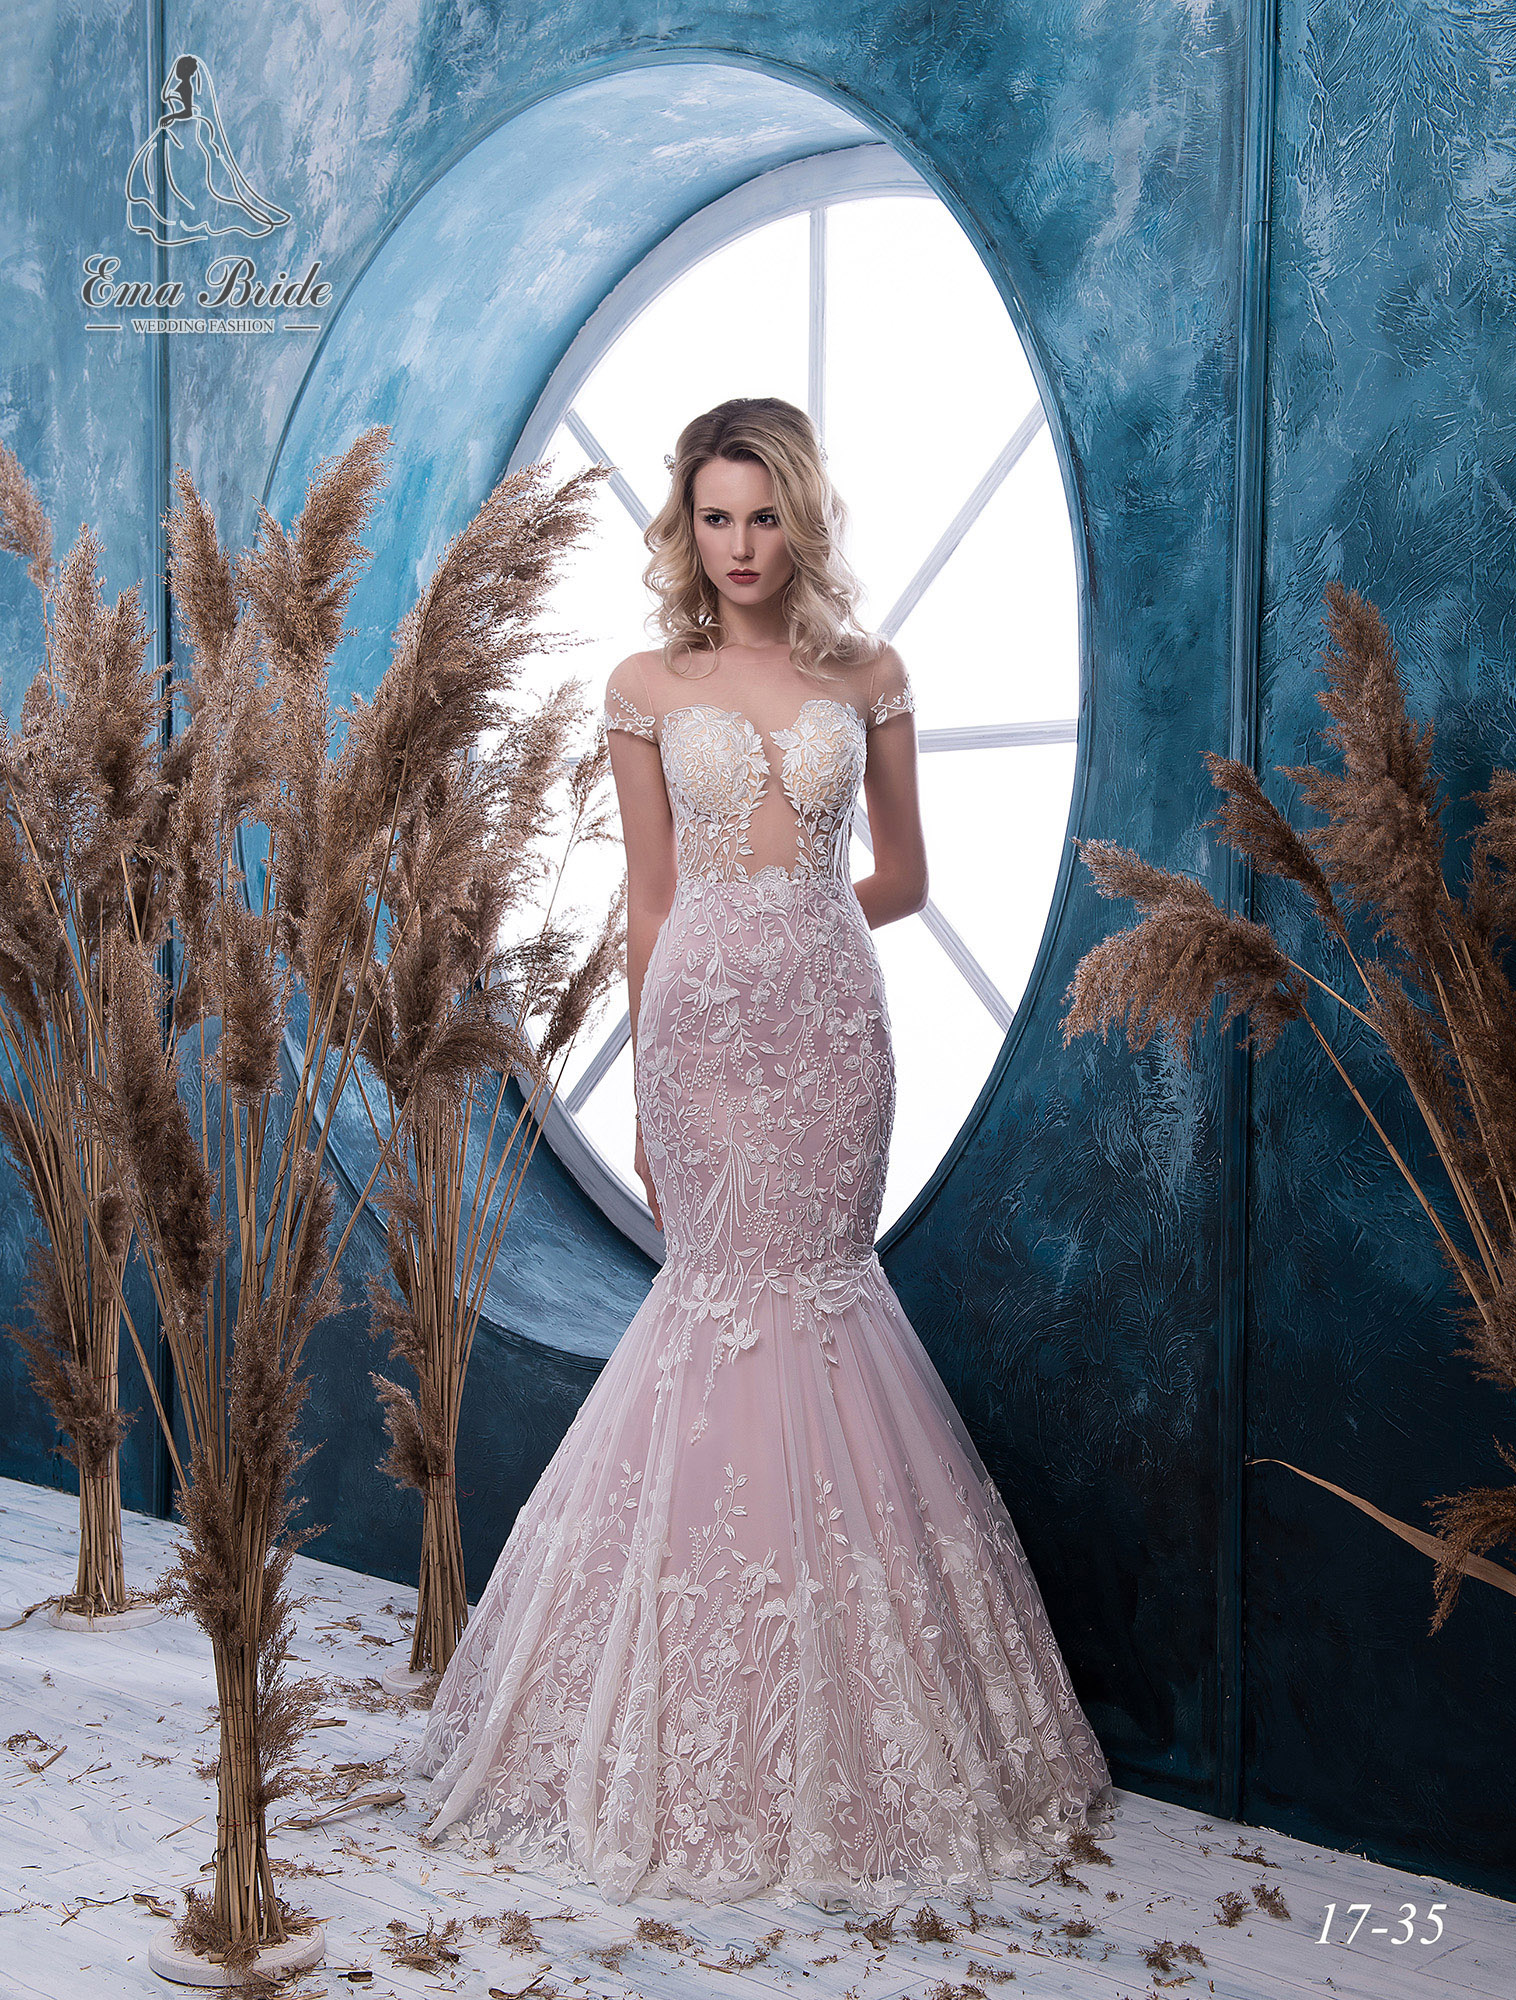 Pink fish silhouette wedding dress